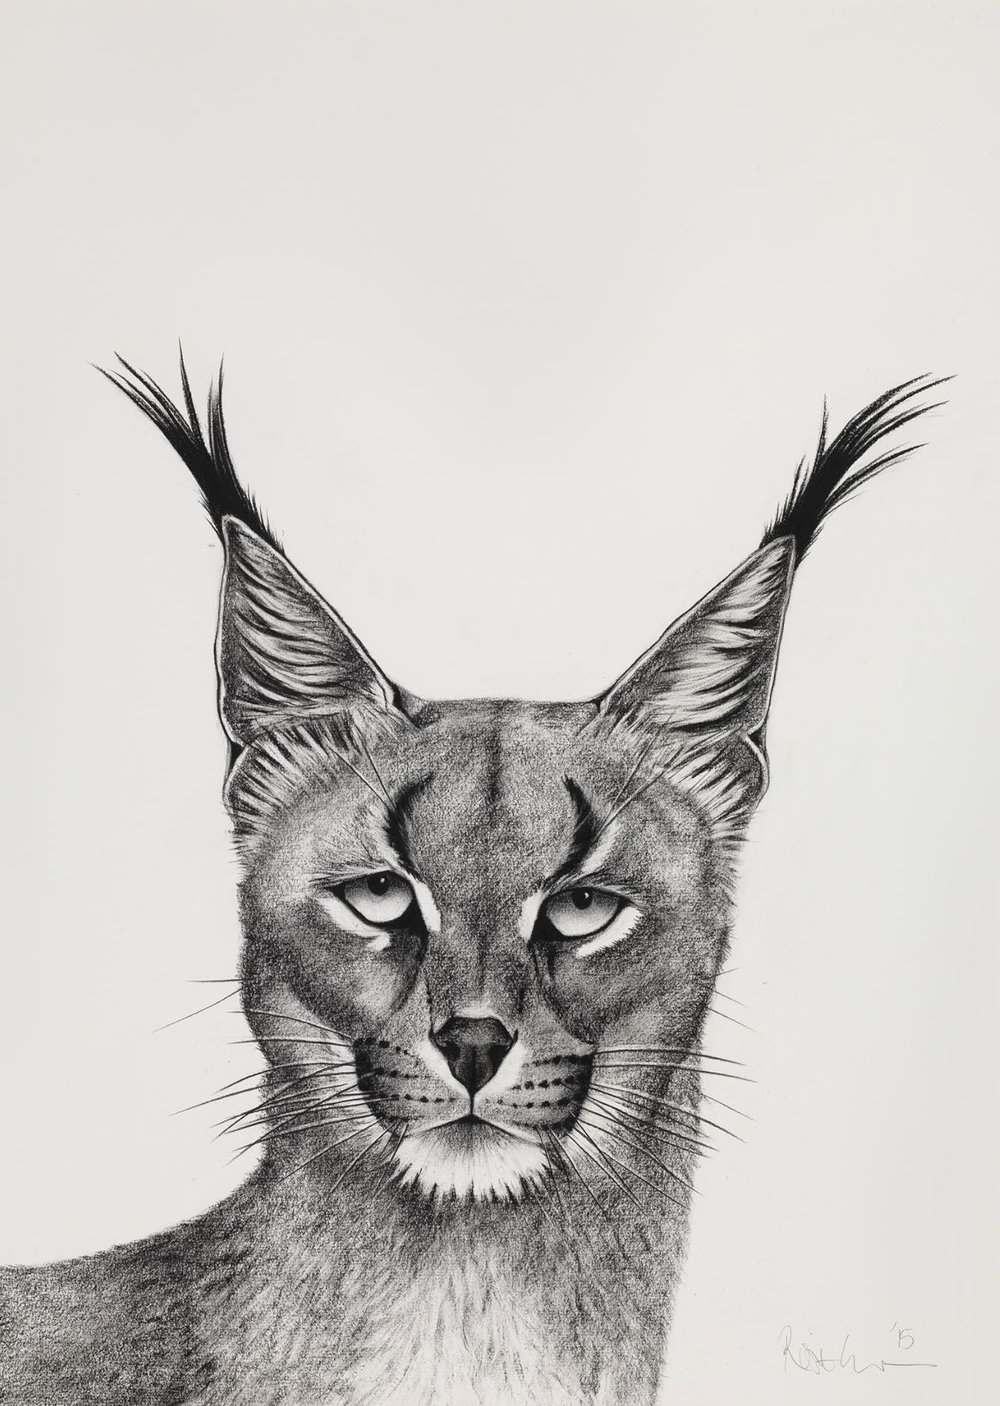 4. CARACAL LOOKING